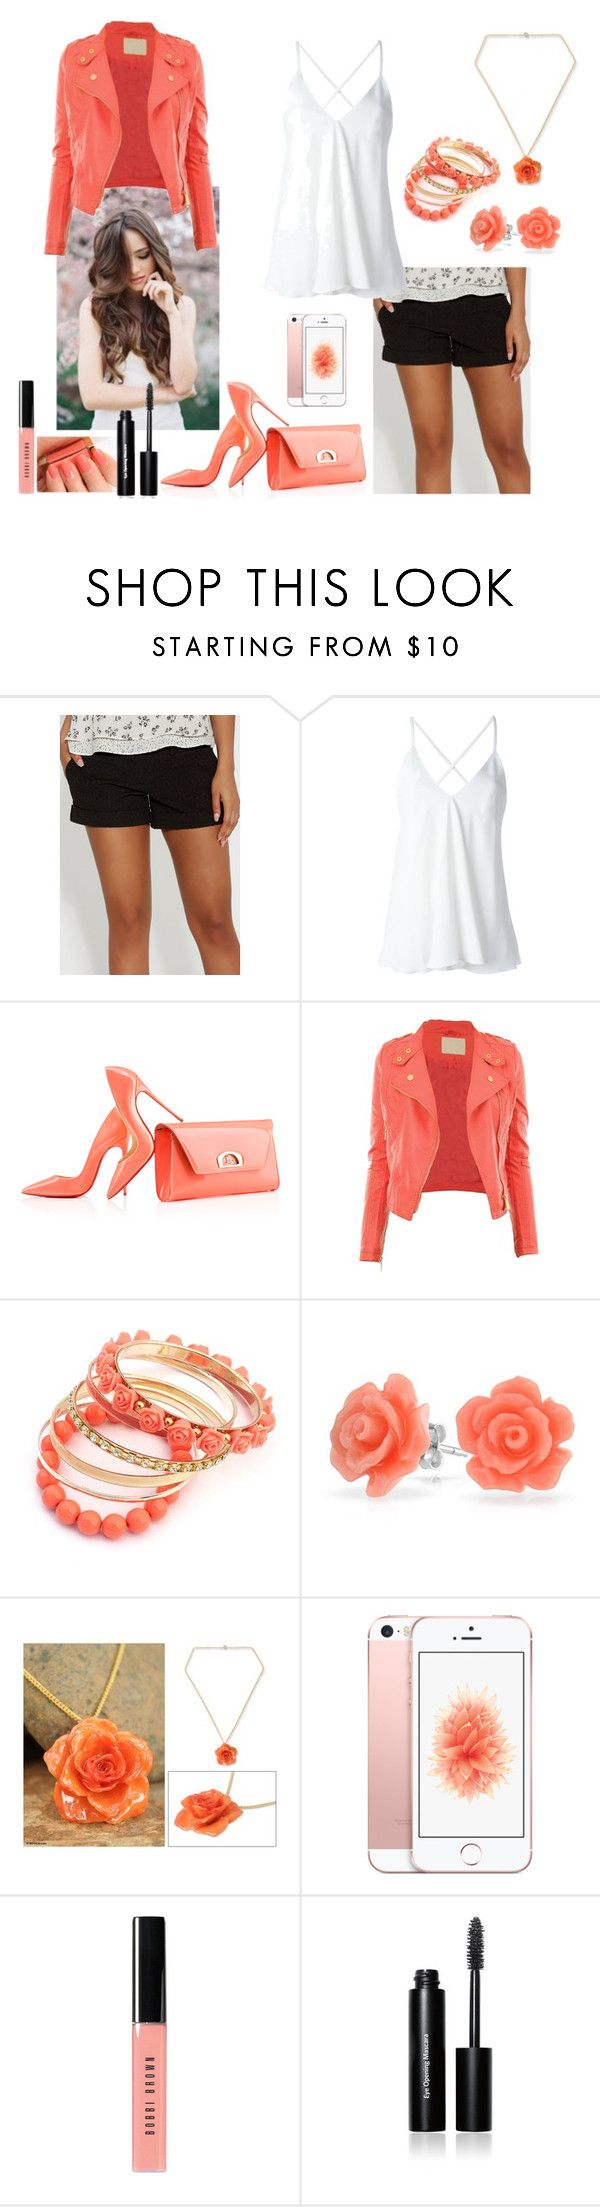 """""""Time for us to become one. - Czas dla nas aby stać się jednym"""" by katrinamil on Polyvore featuring moda, maurices, Dondup, Christian Louboutin, Bling Jewelry, NOVICA, Bobbi Brown Cosmetics i Tom Ford"""